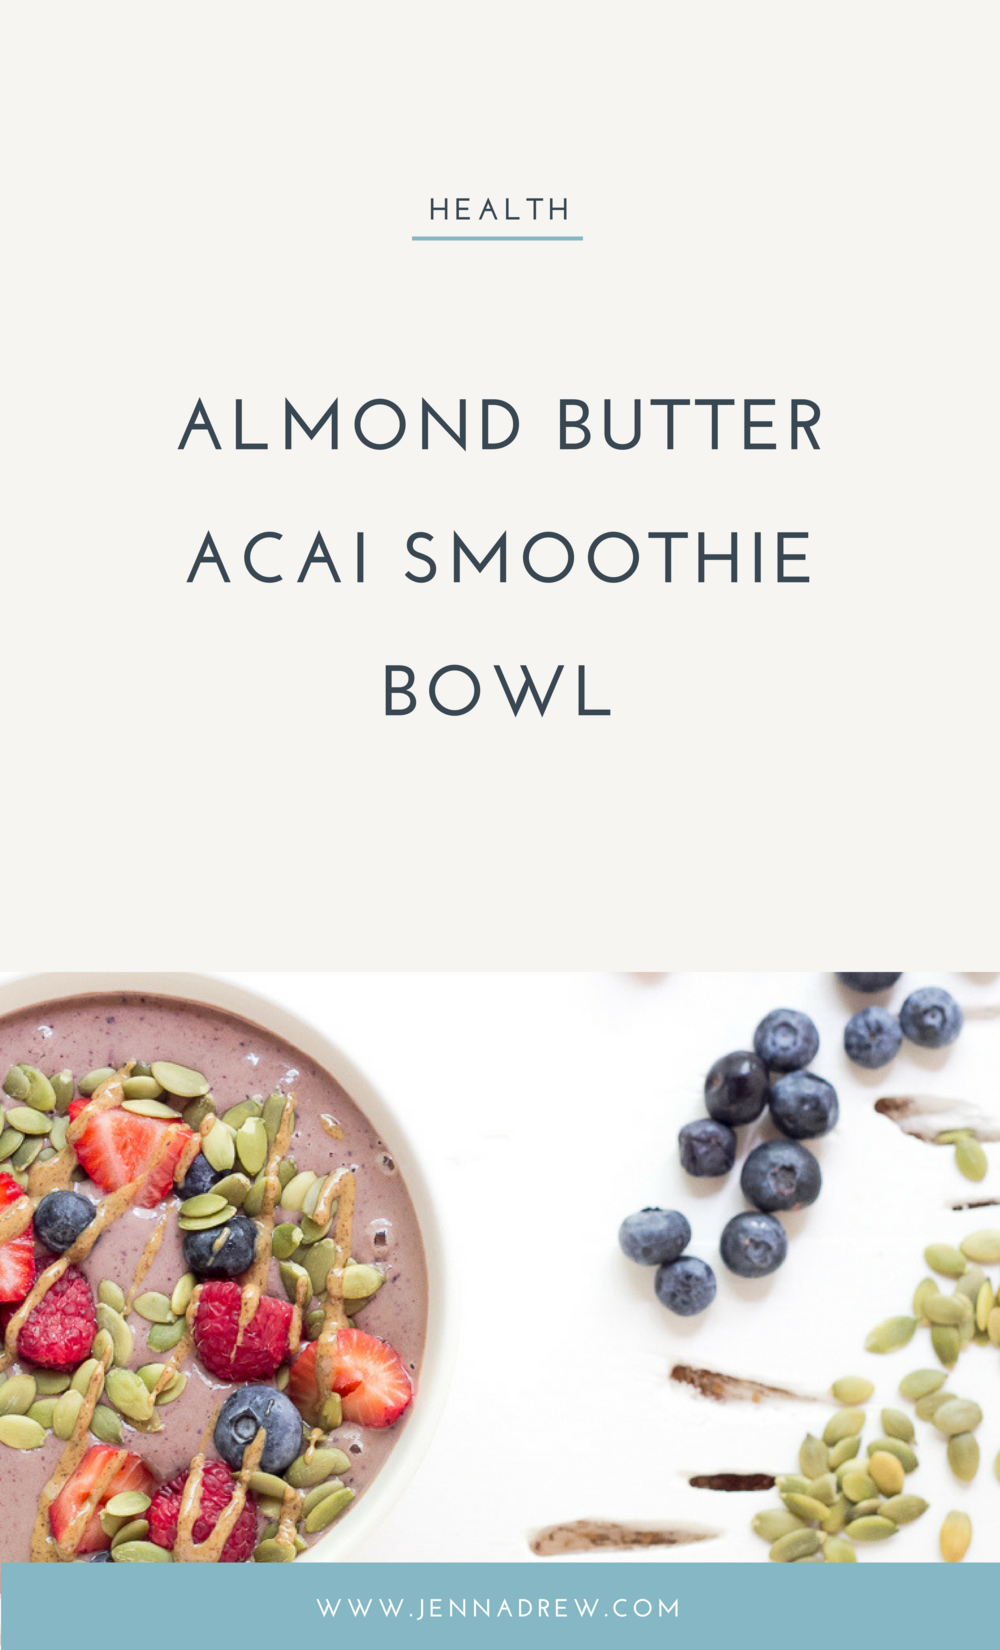 acai-smoothie-bowl-almong-butter.png